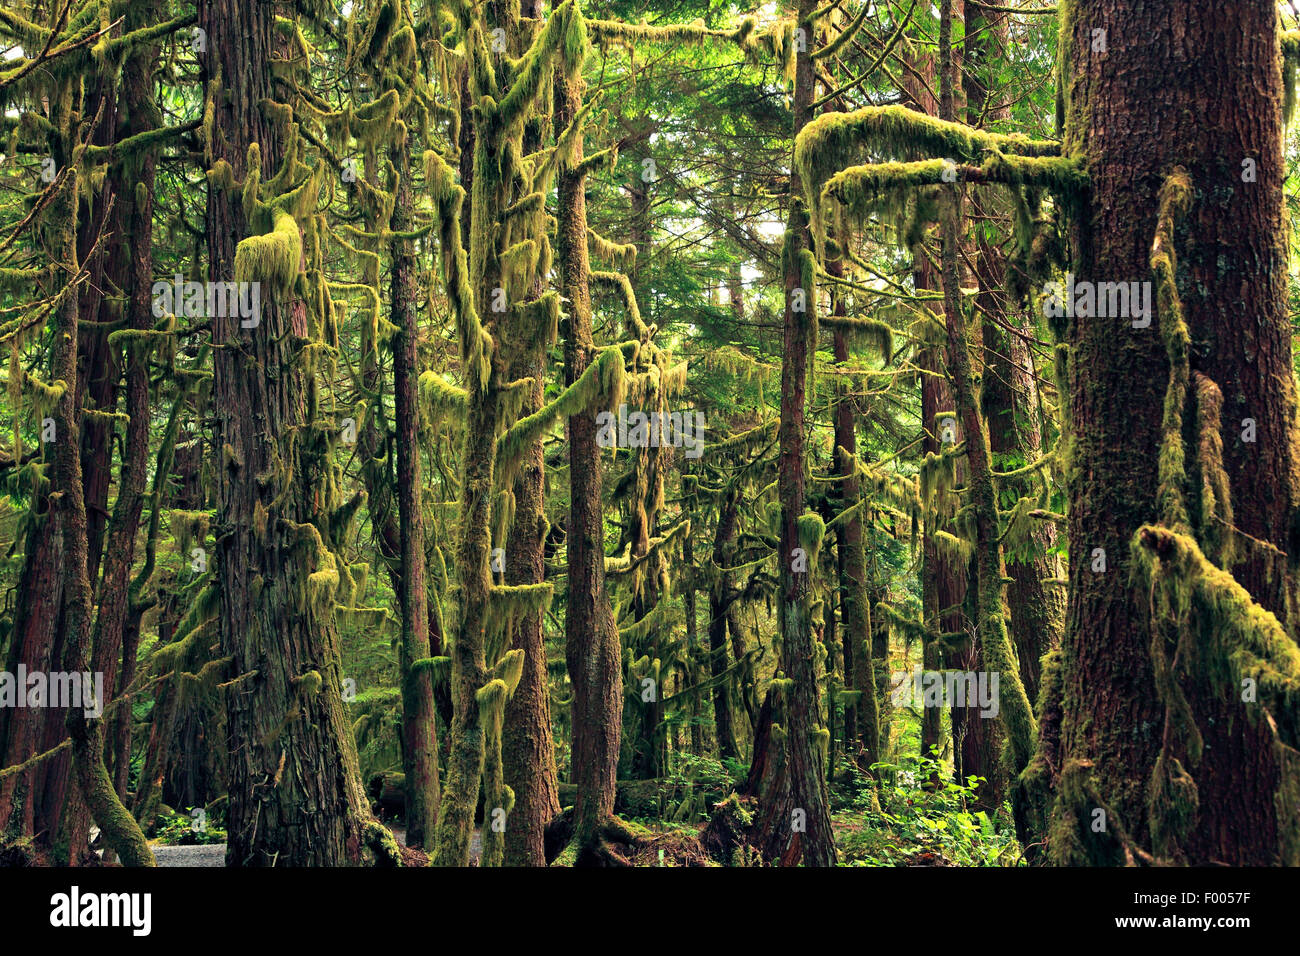 humid temperate rainforest with lichen growth, Canada, Vancouver Island - Stock Image